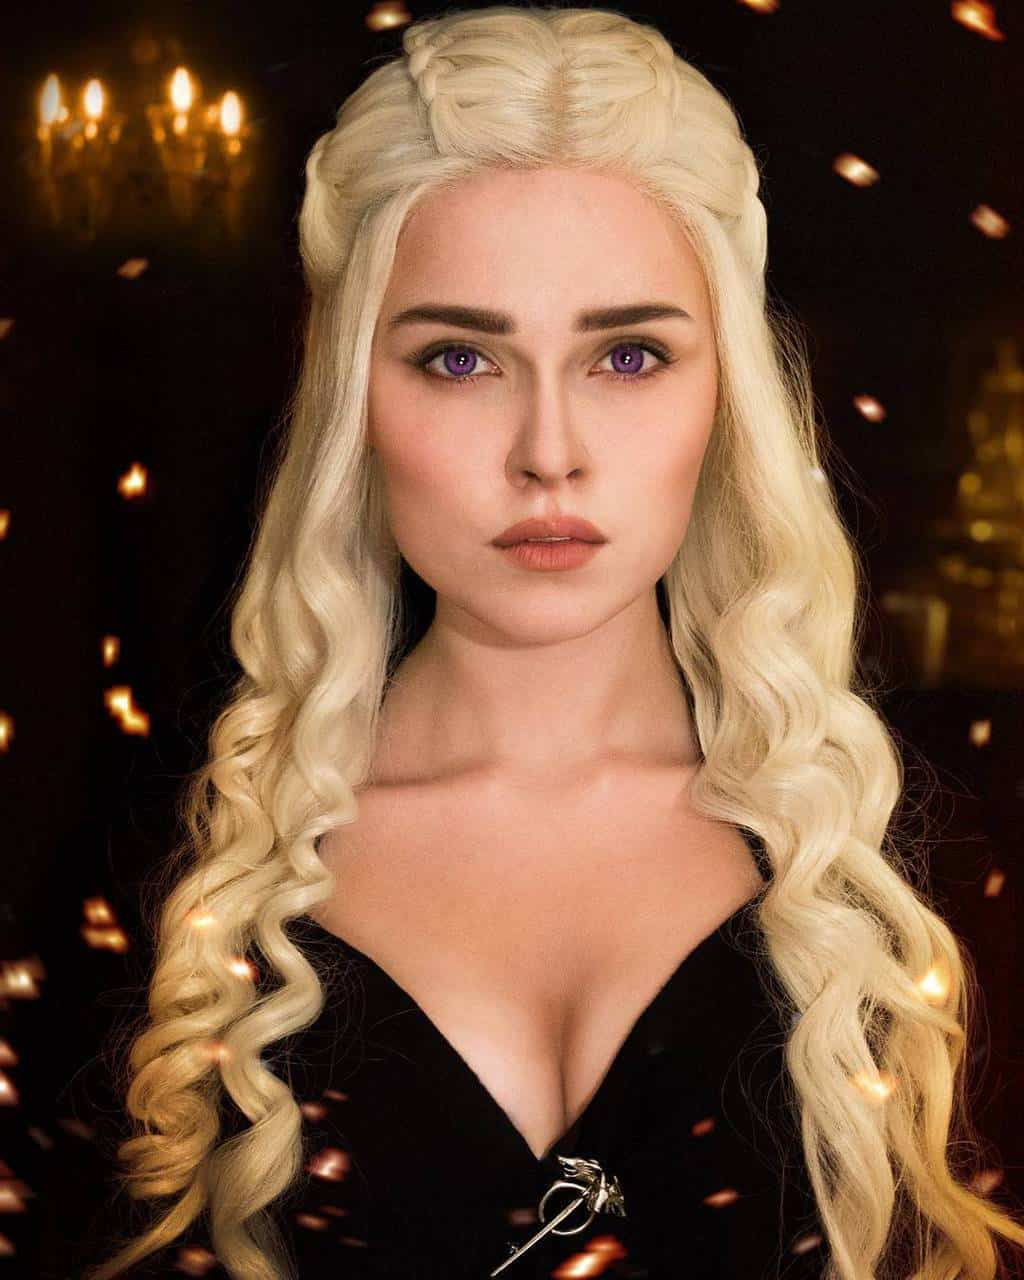 cosplay game of thrones Daenerys Targaryen